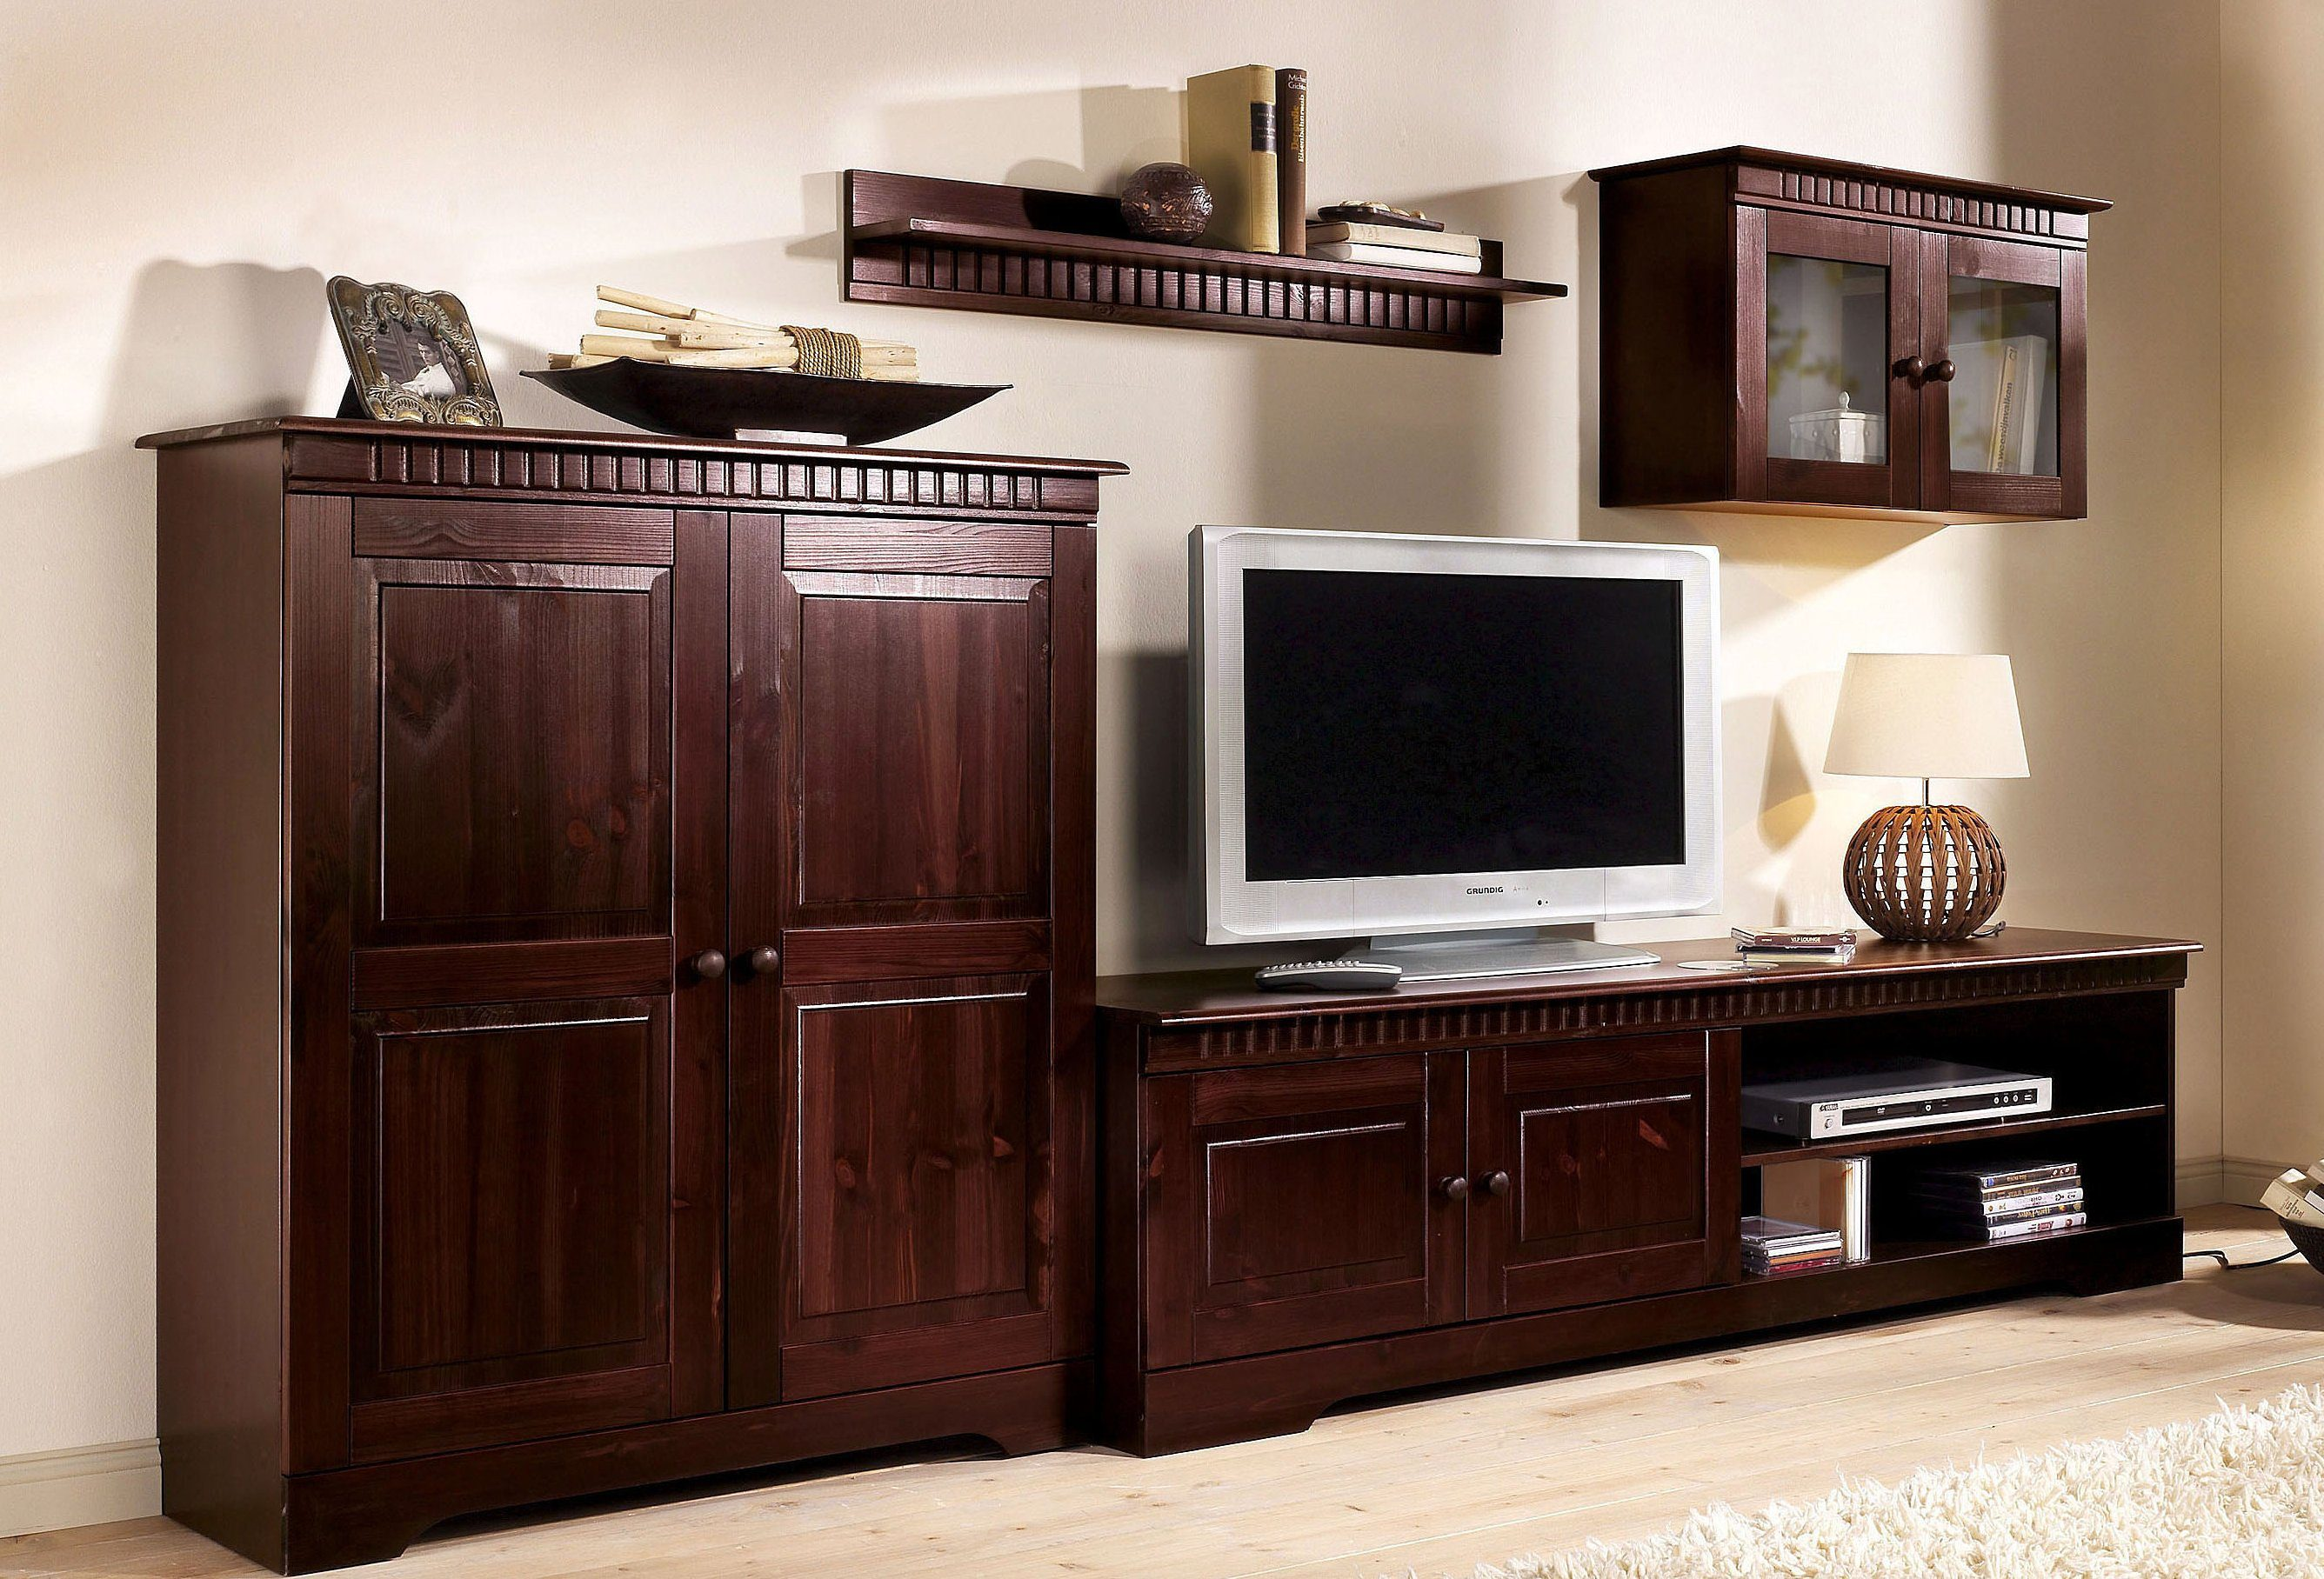 home affaire wohnwand braun braun wohnw nde zum bestpreis kaufen. Black Bedroom Furniture Sets. Home Design Ideas